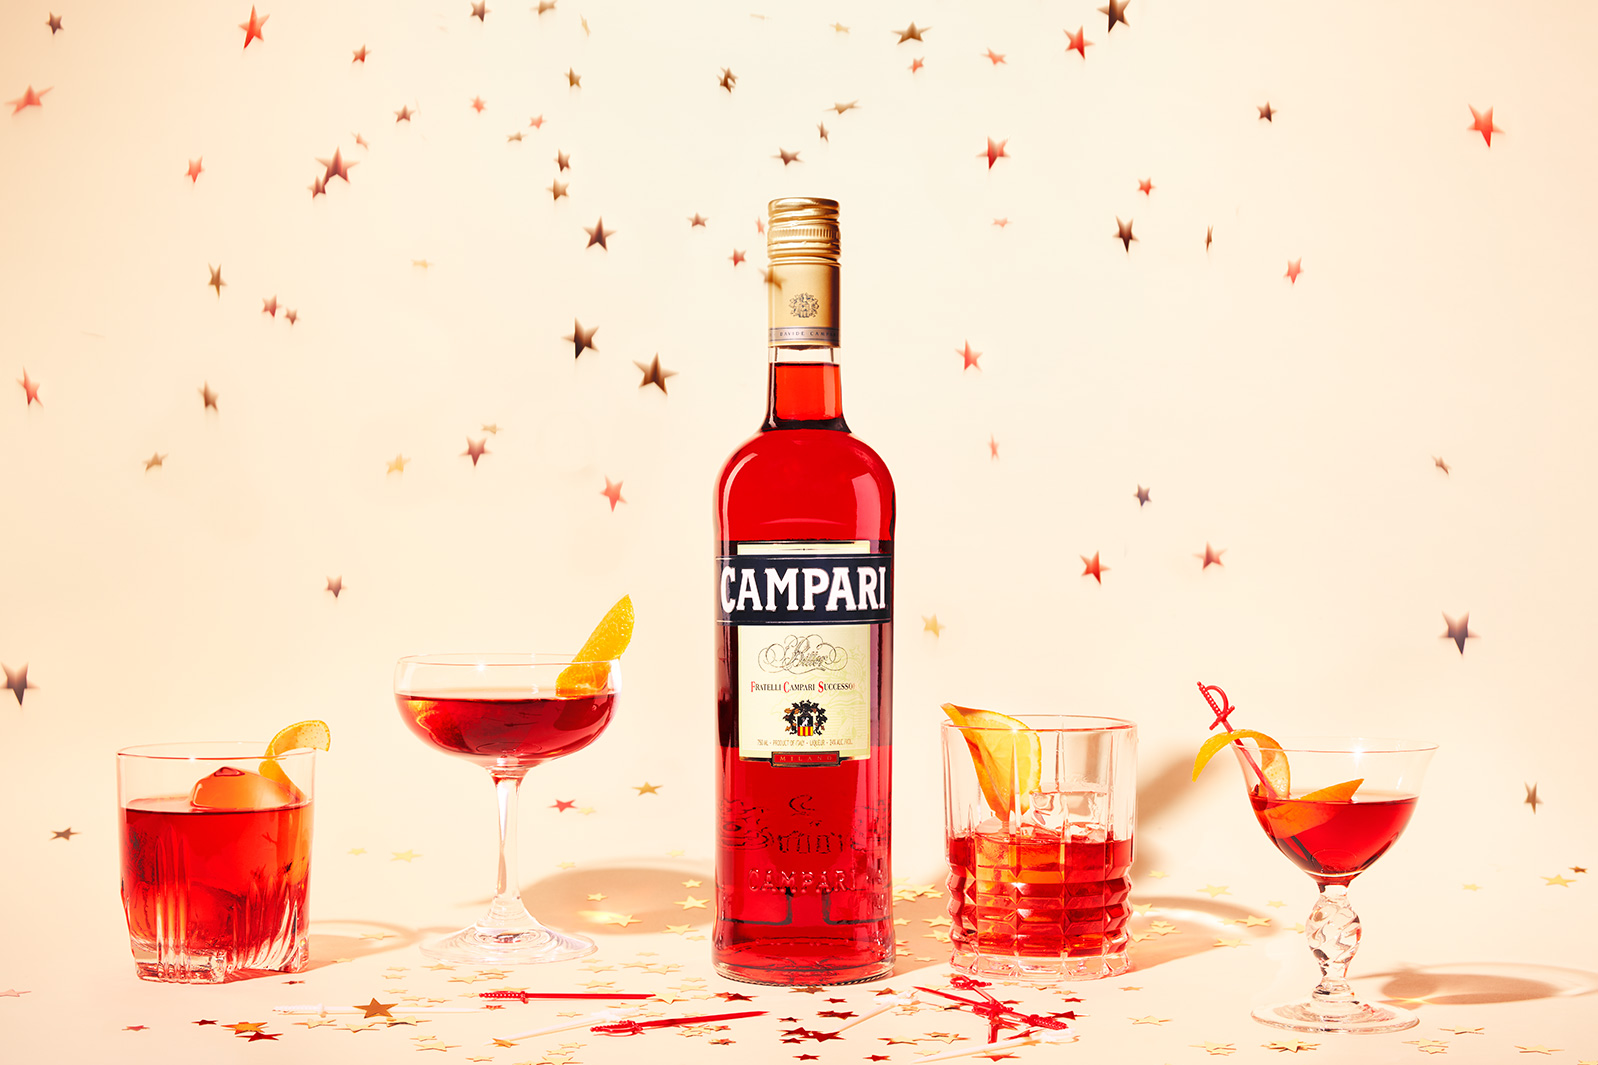 CampariBottleCocktailStars